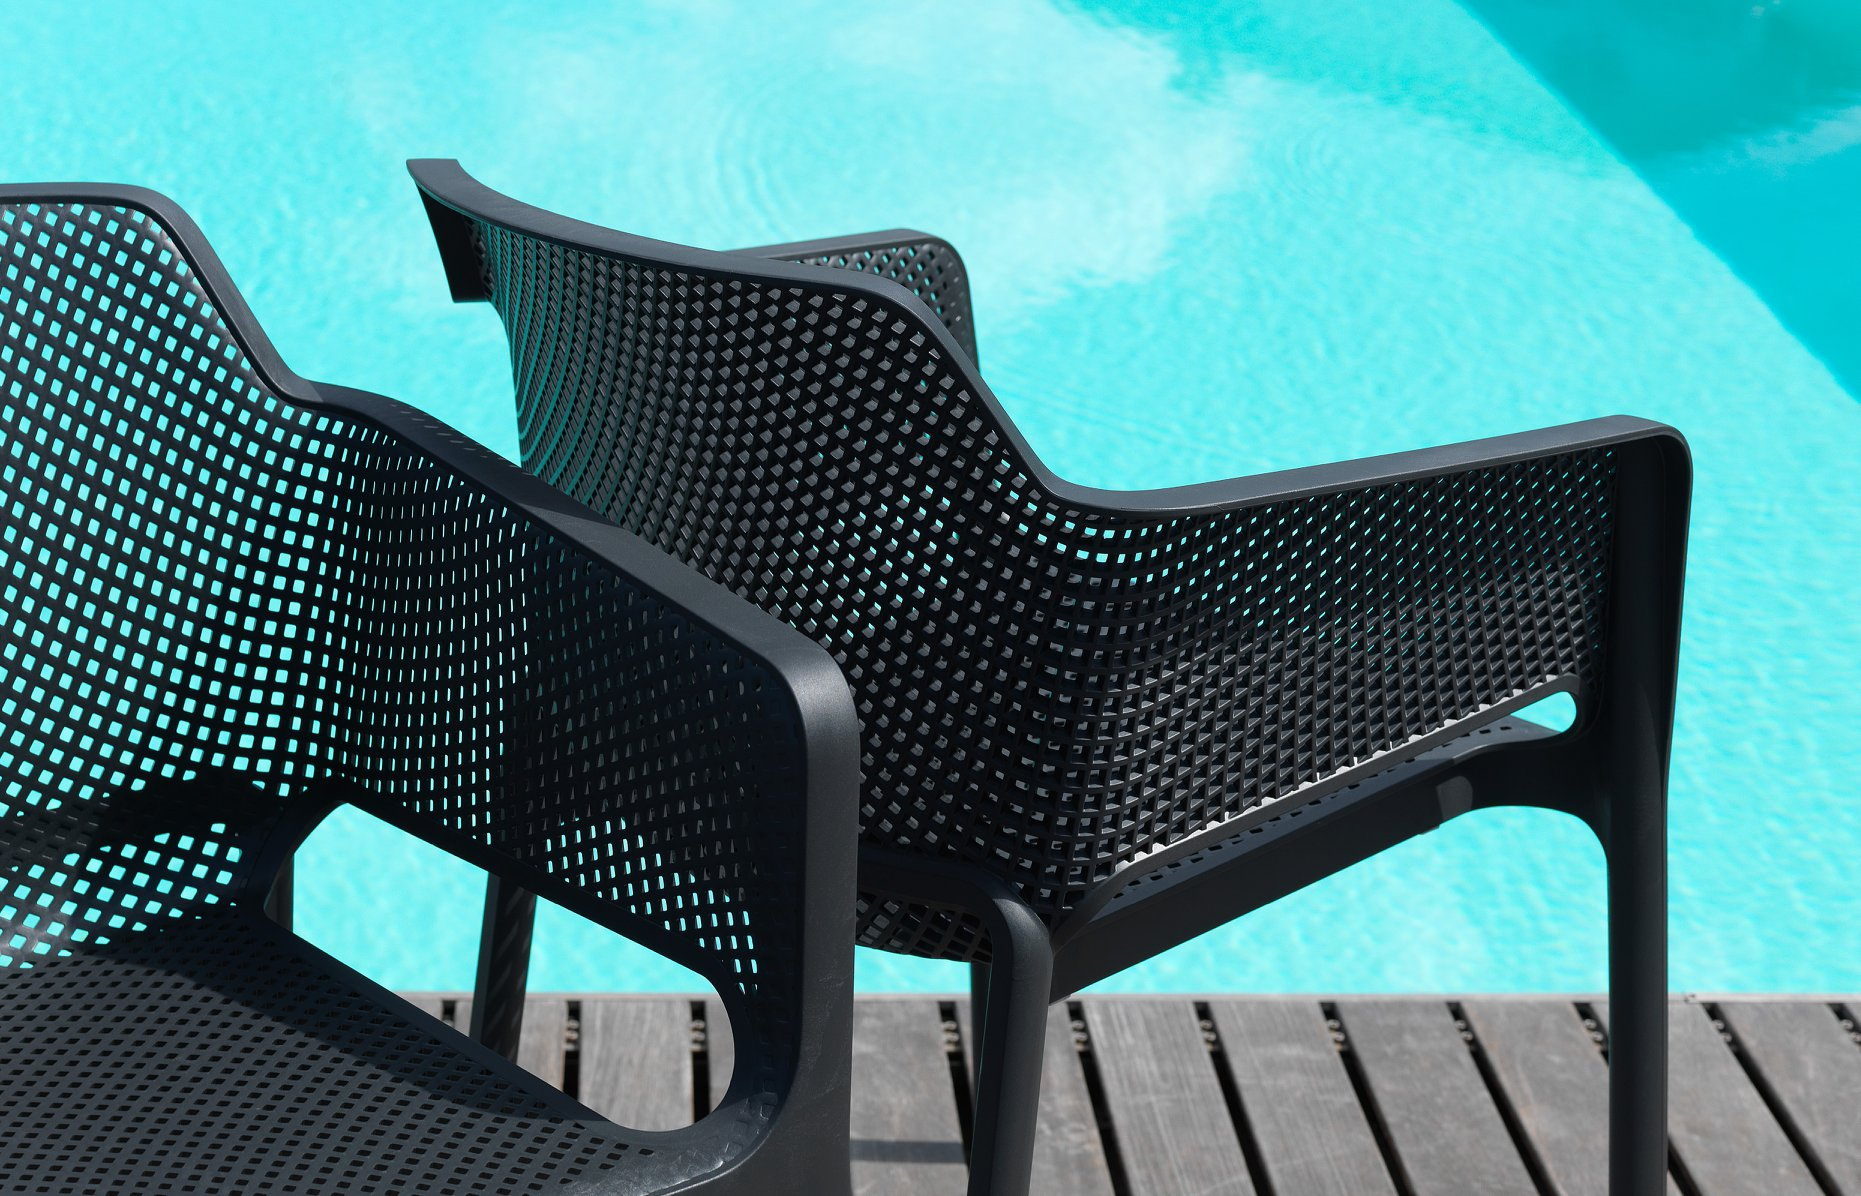 Net Relax Chairs Poolside